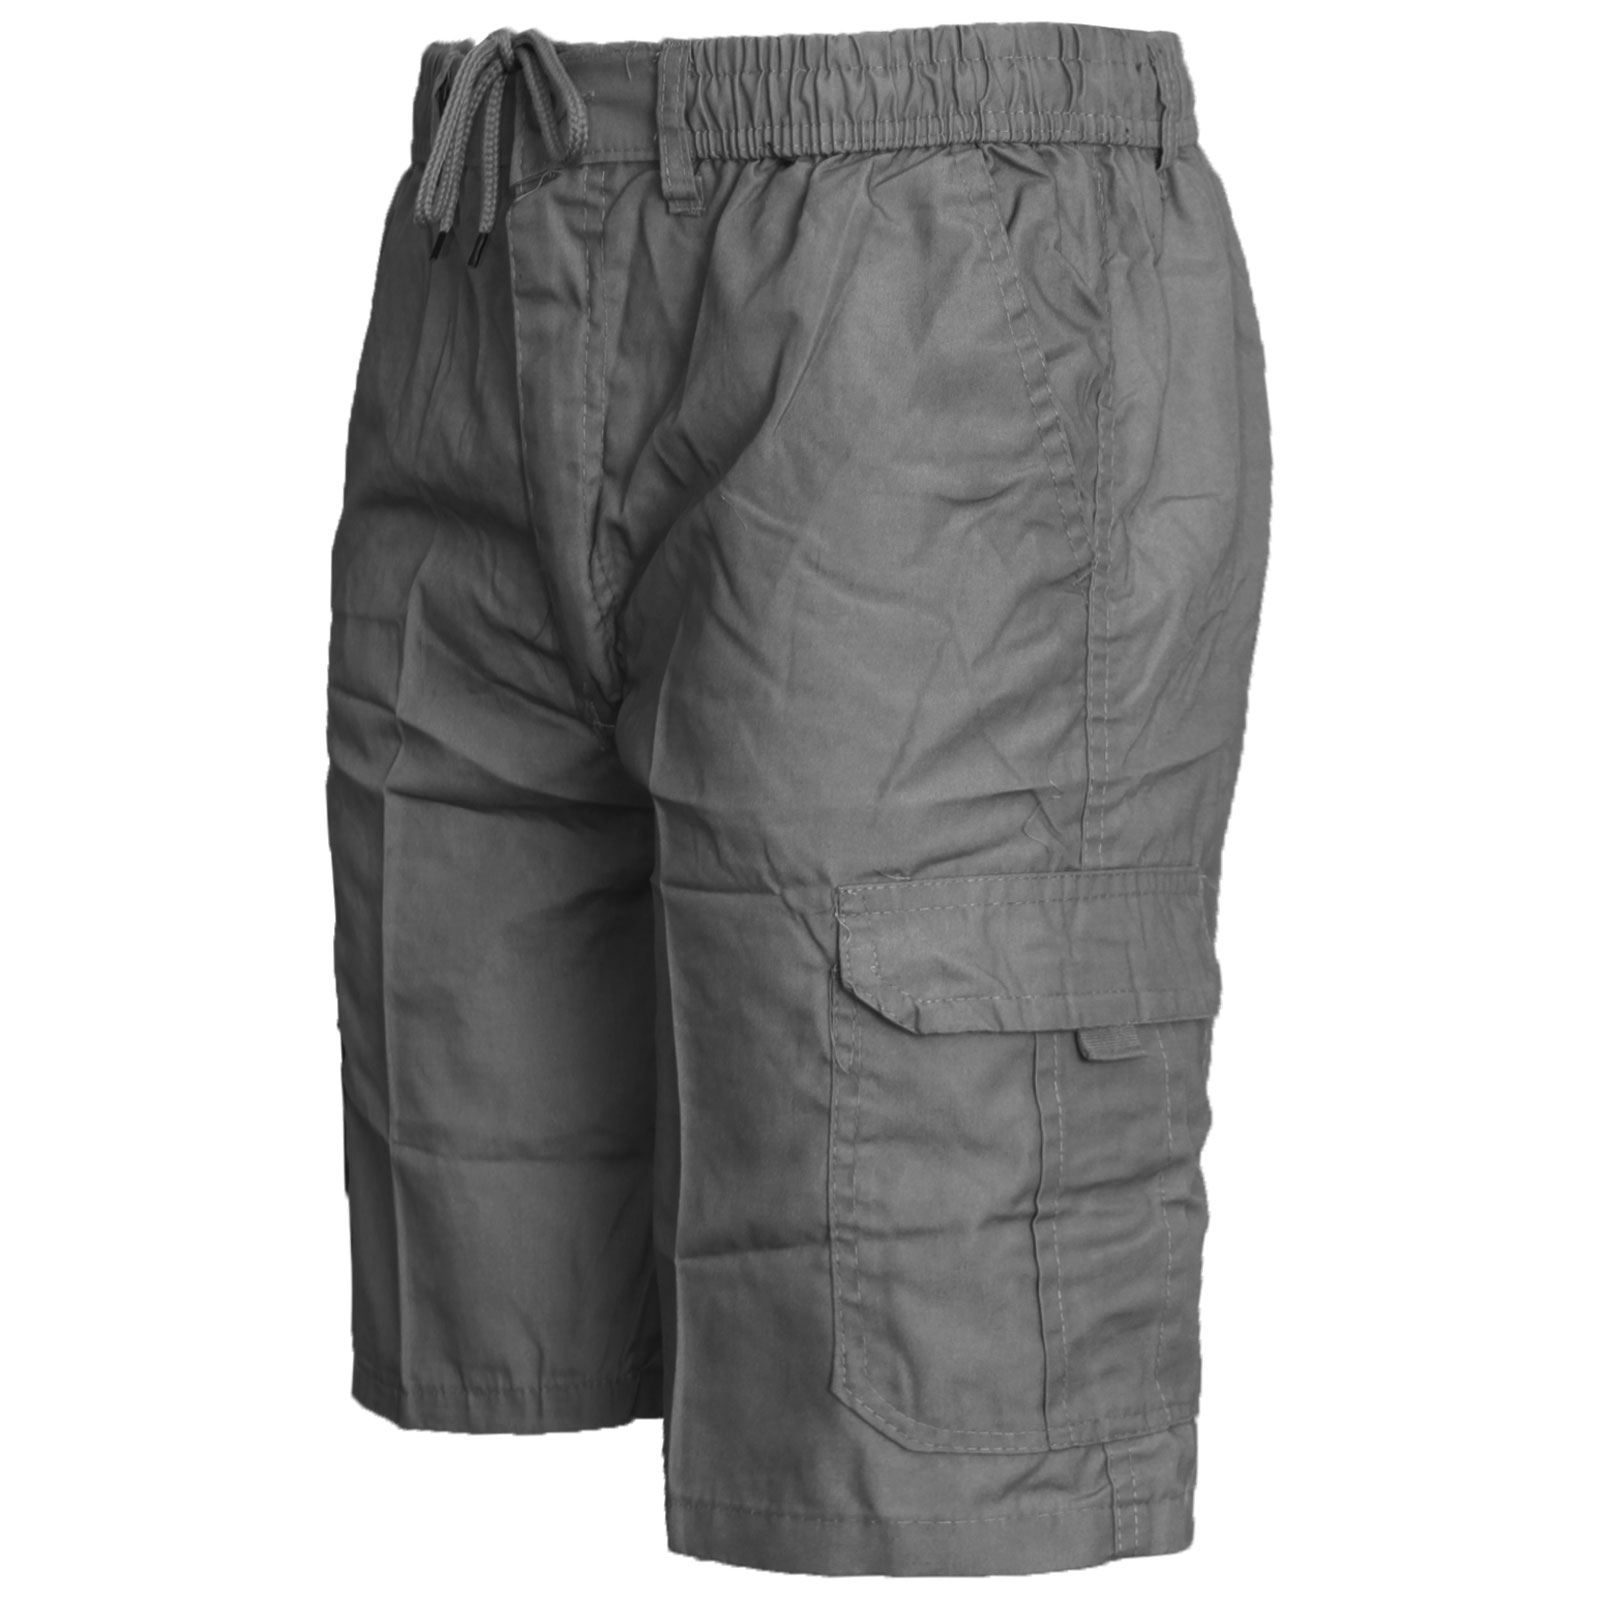 MENS-ELASTICATED-KNEE-LENGTH-OR-3-4-SHORTS-CARGO-COMBAT-MULTI-POCKET-SUMMER-PANT thumbnail 8